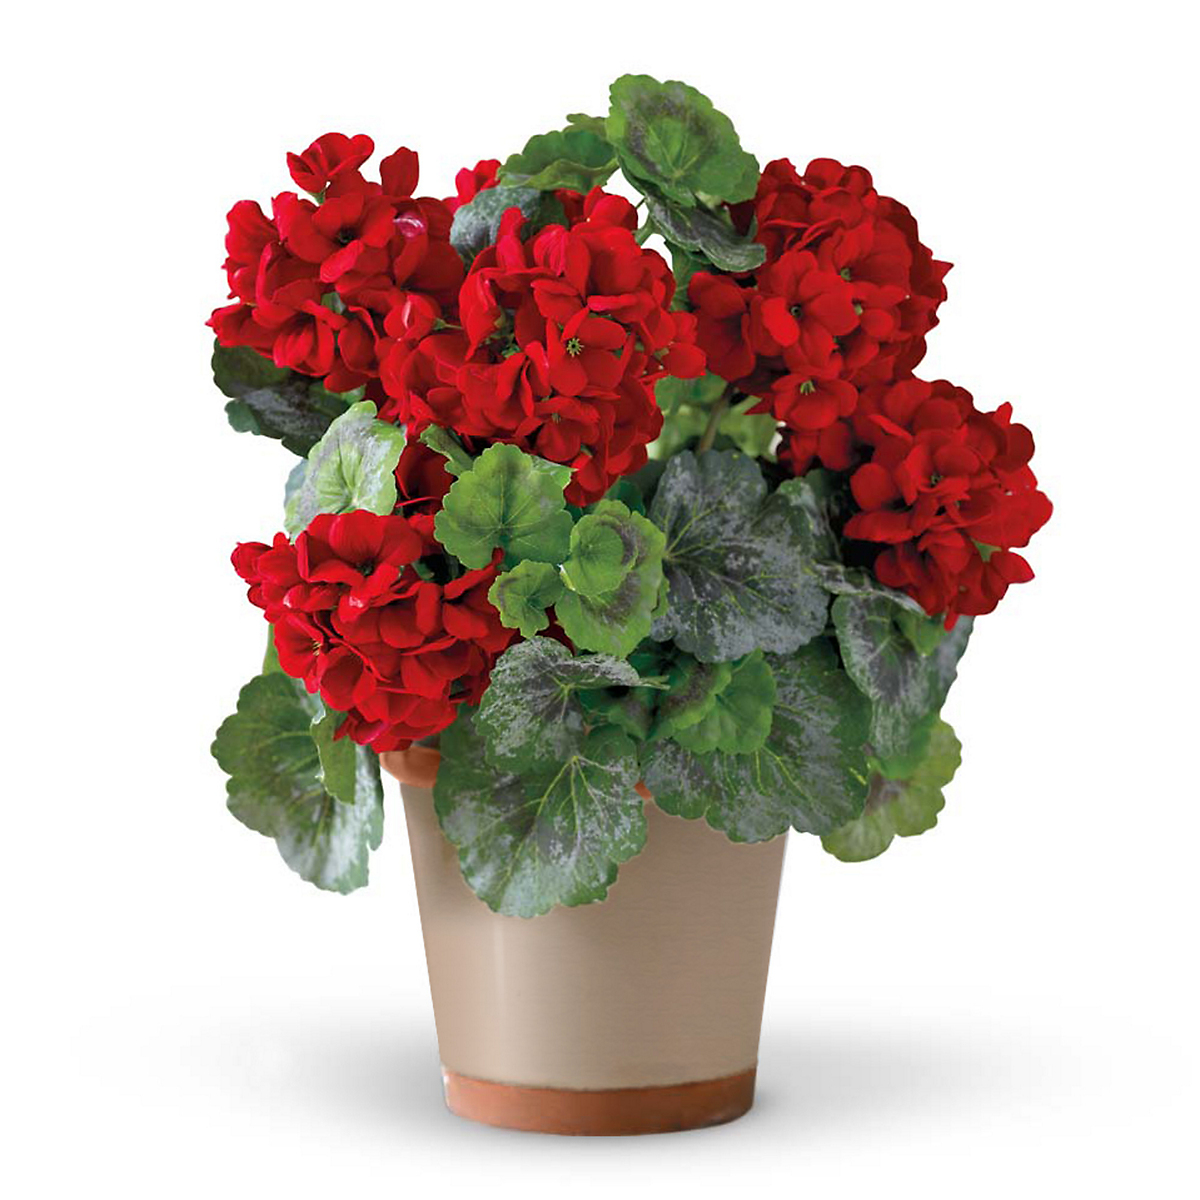 Potted Red Geranium